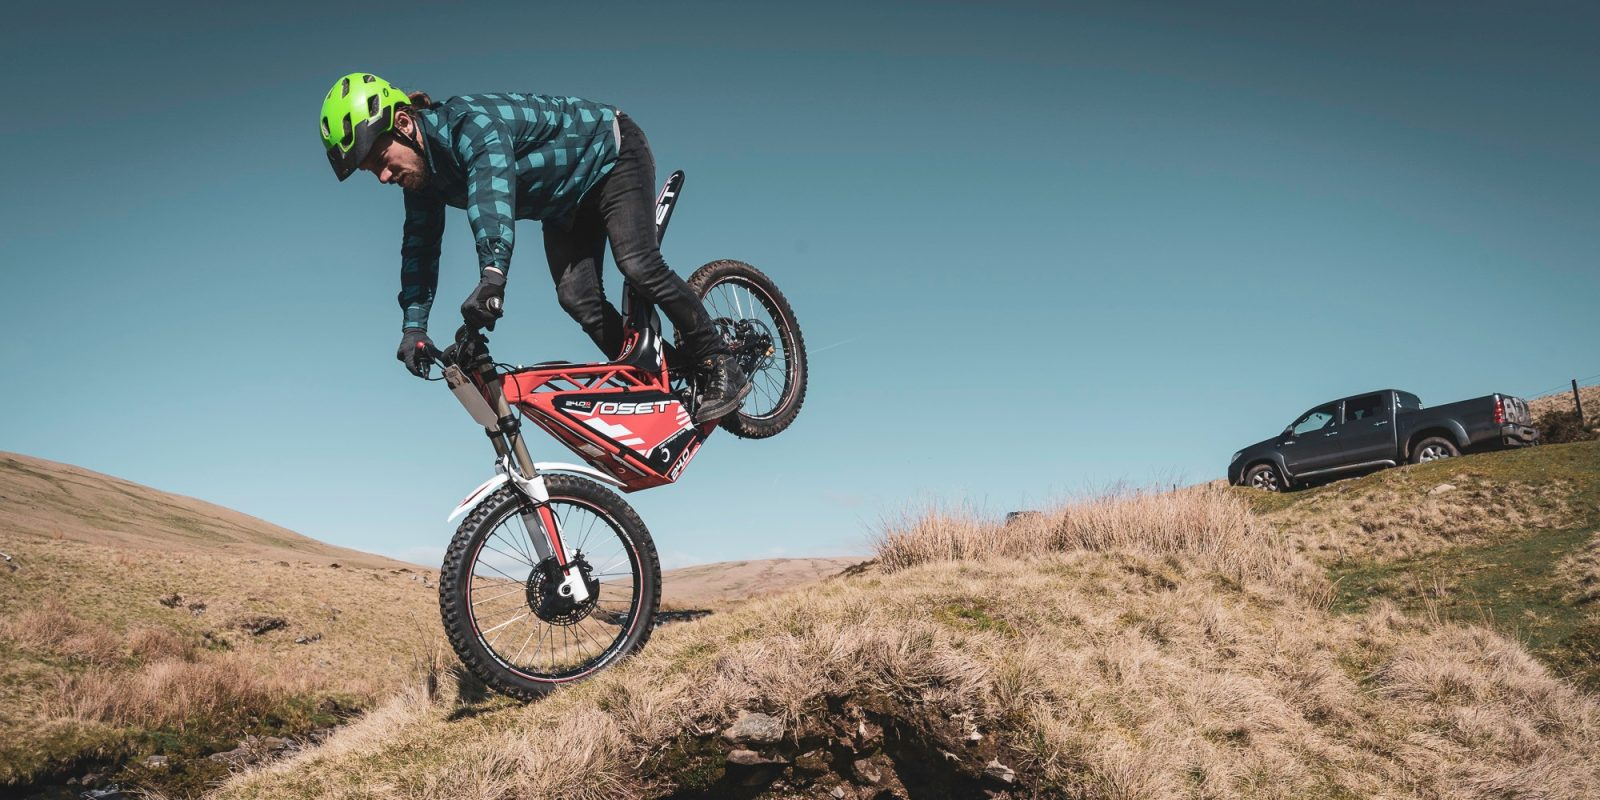 ec6ac7f9876 As electric motorcycles and dirt bikes become more popular, an increasing  number of riders are making the switch from yesterday's technology to  today's.